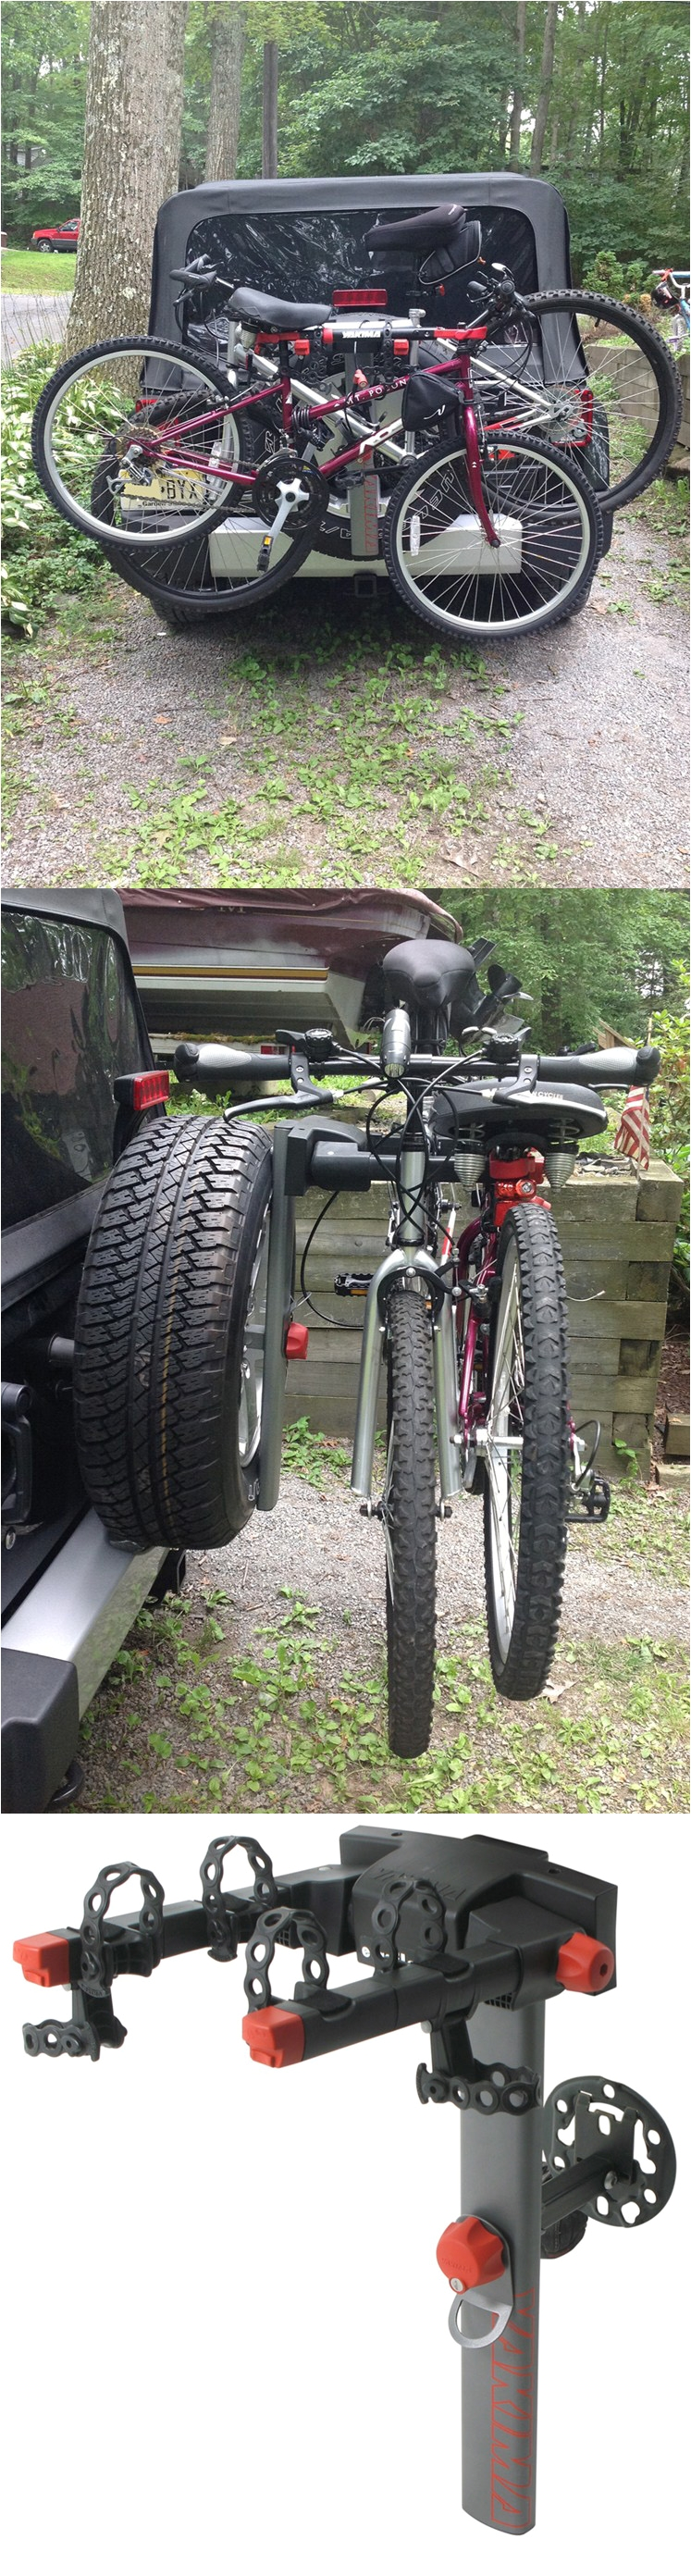 securely mount this bike rack to the spare tire of the jeep wrangler transport 2 bikes to your biking destination with maximum bike protection and